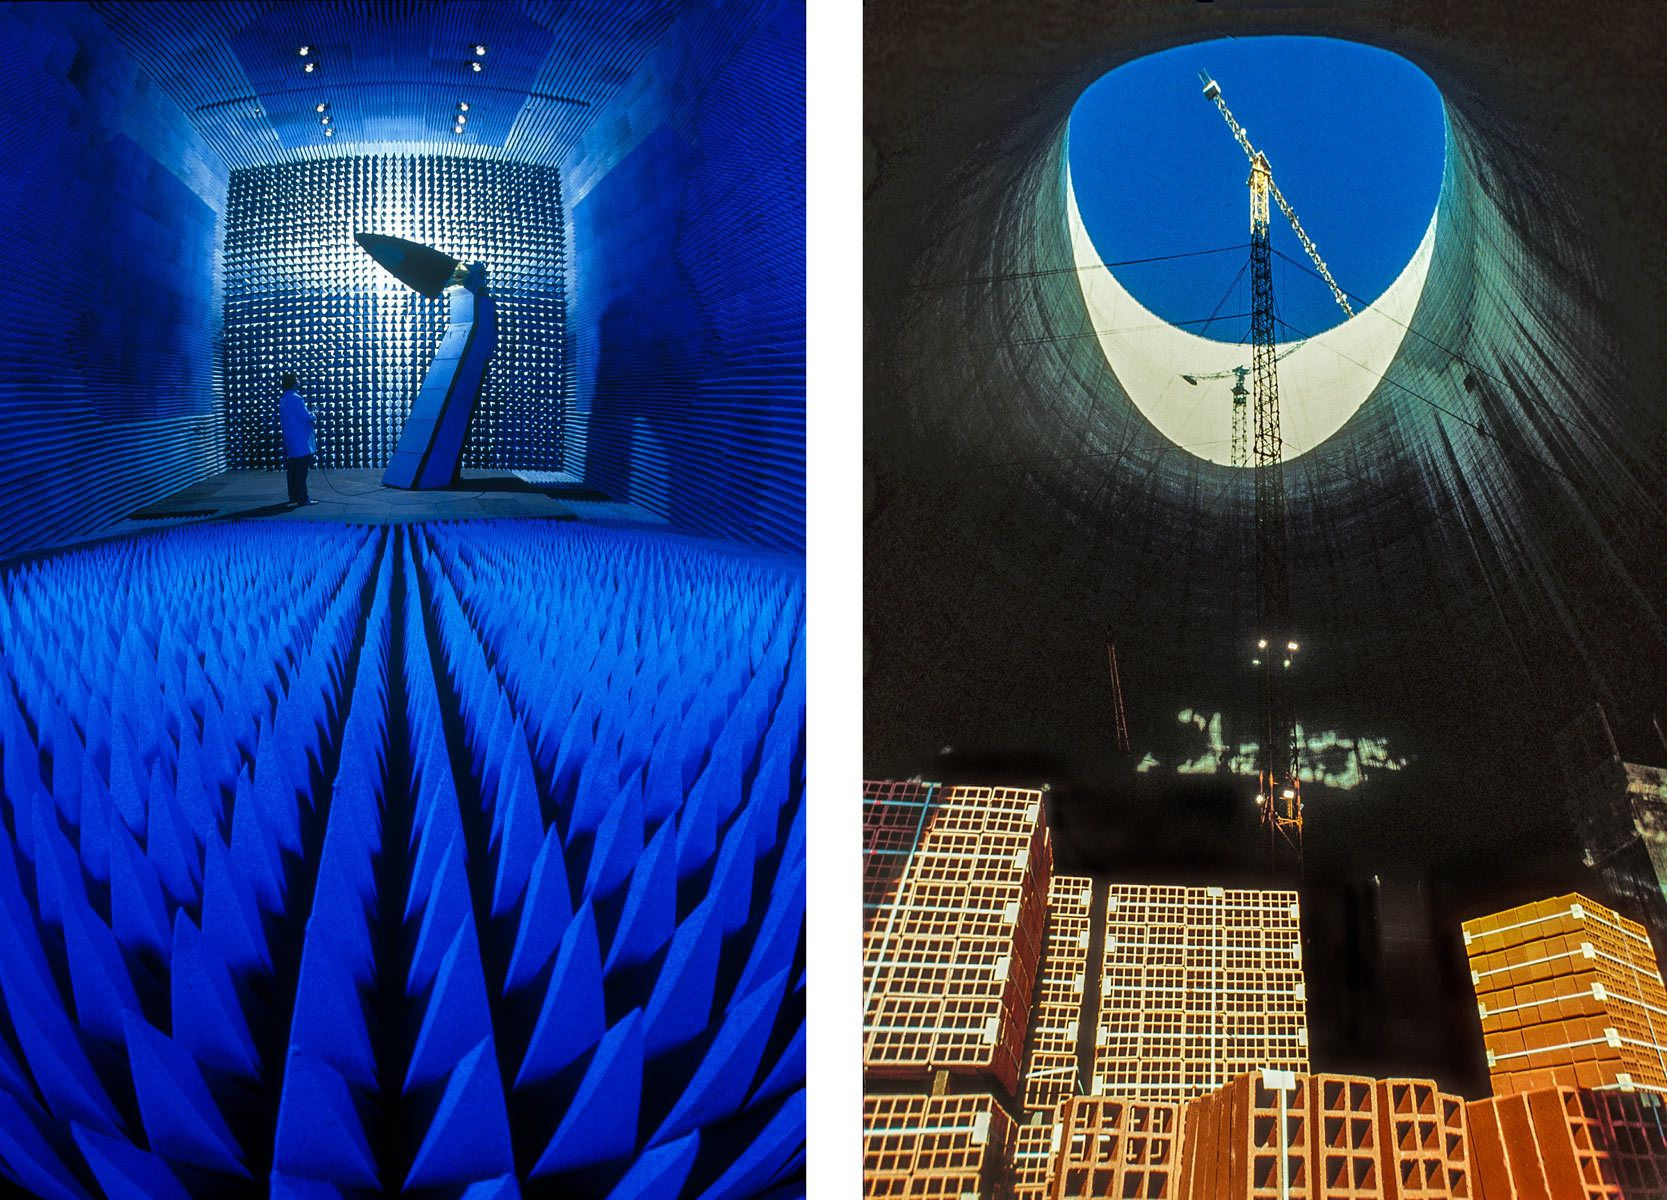 Anecohic Test Room and Nuclear Cooling Tower with Bricks